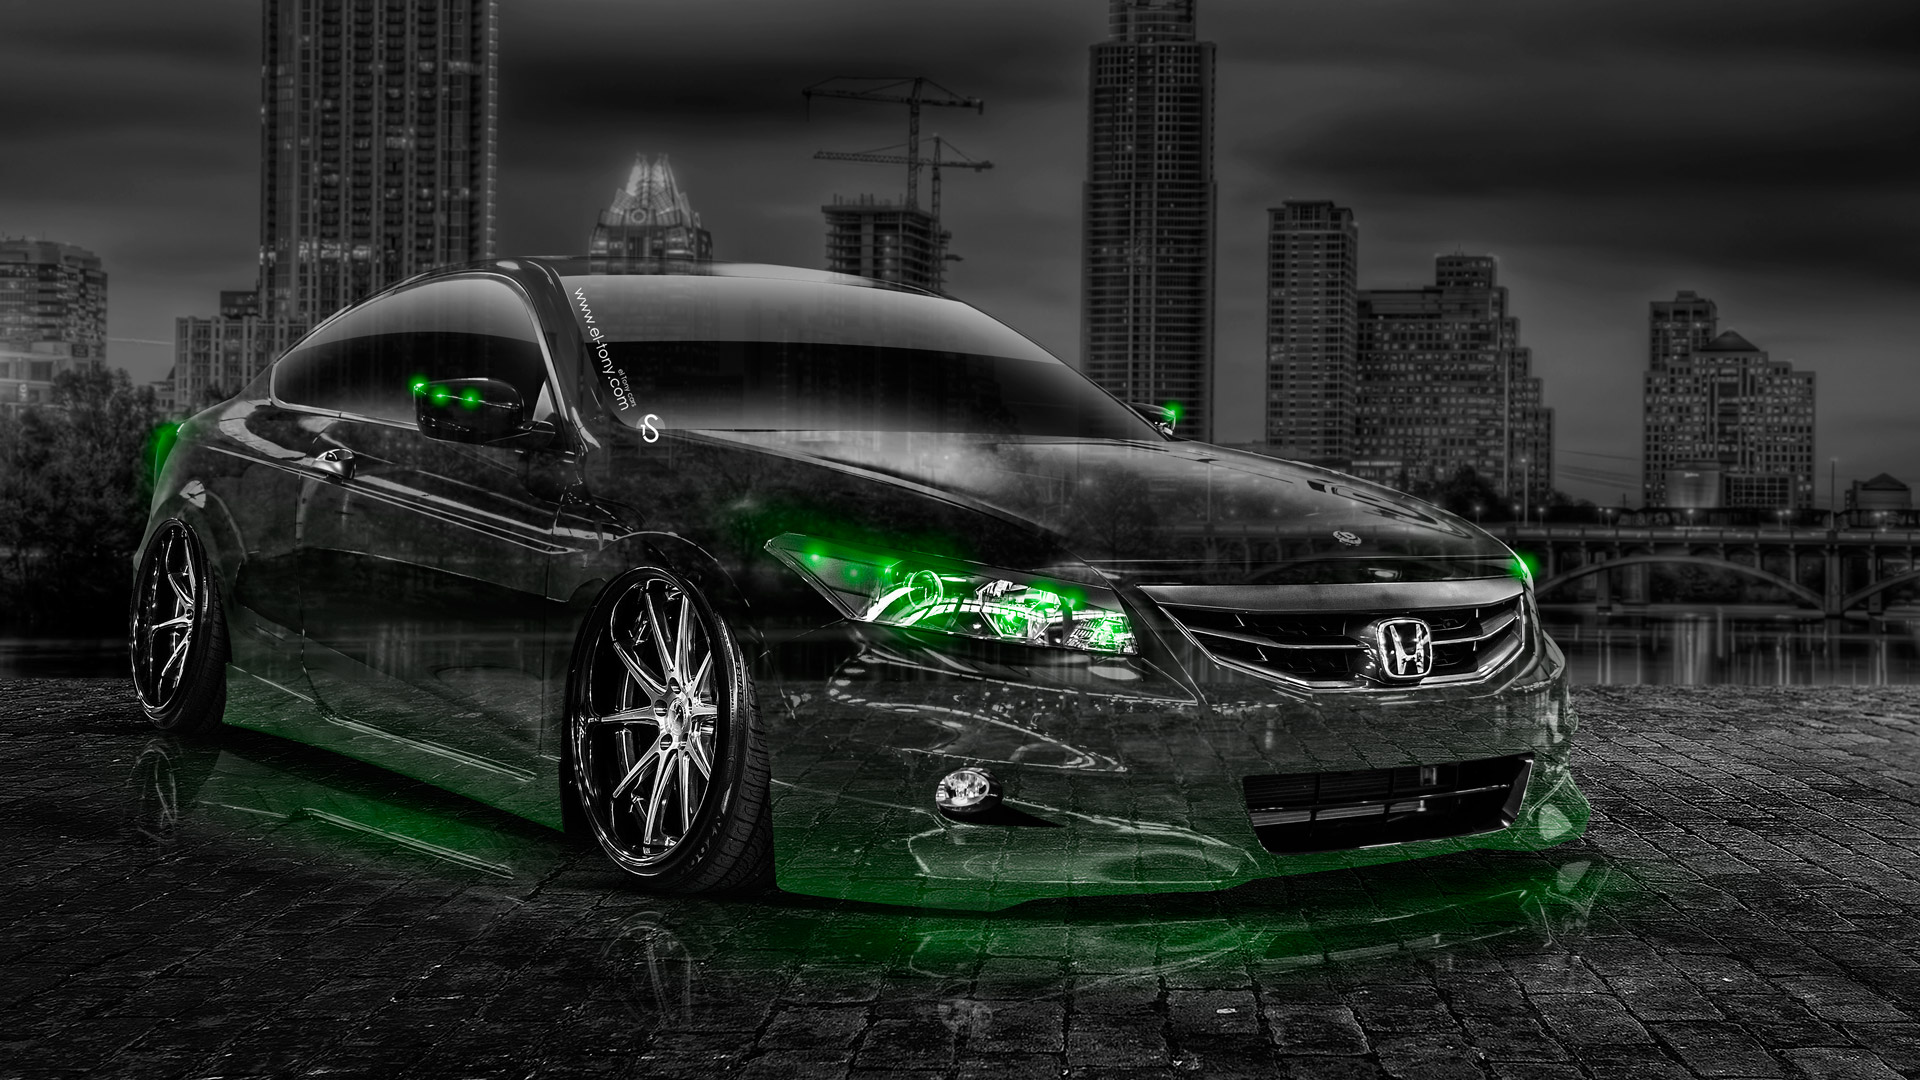 Acura Tsx 2014 Jdm Wallpaper 1920x1080 28444